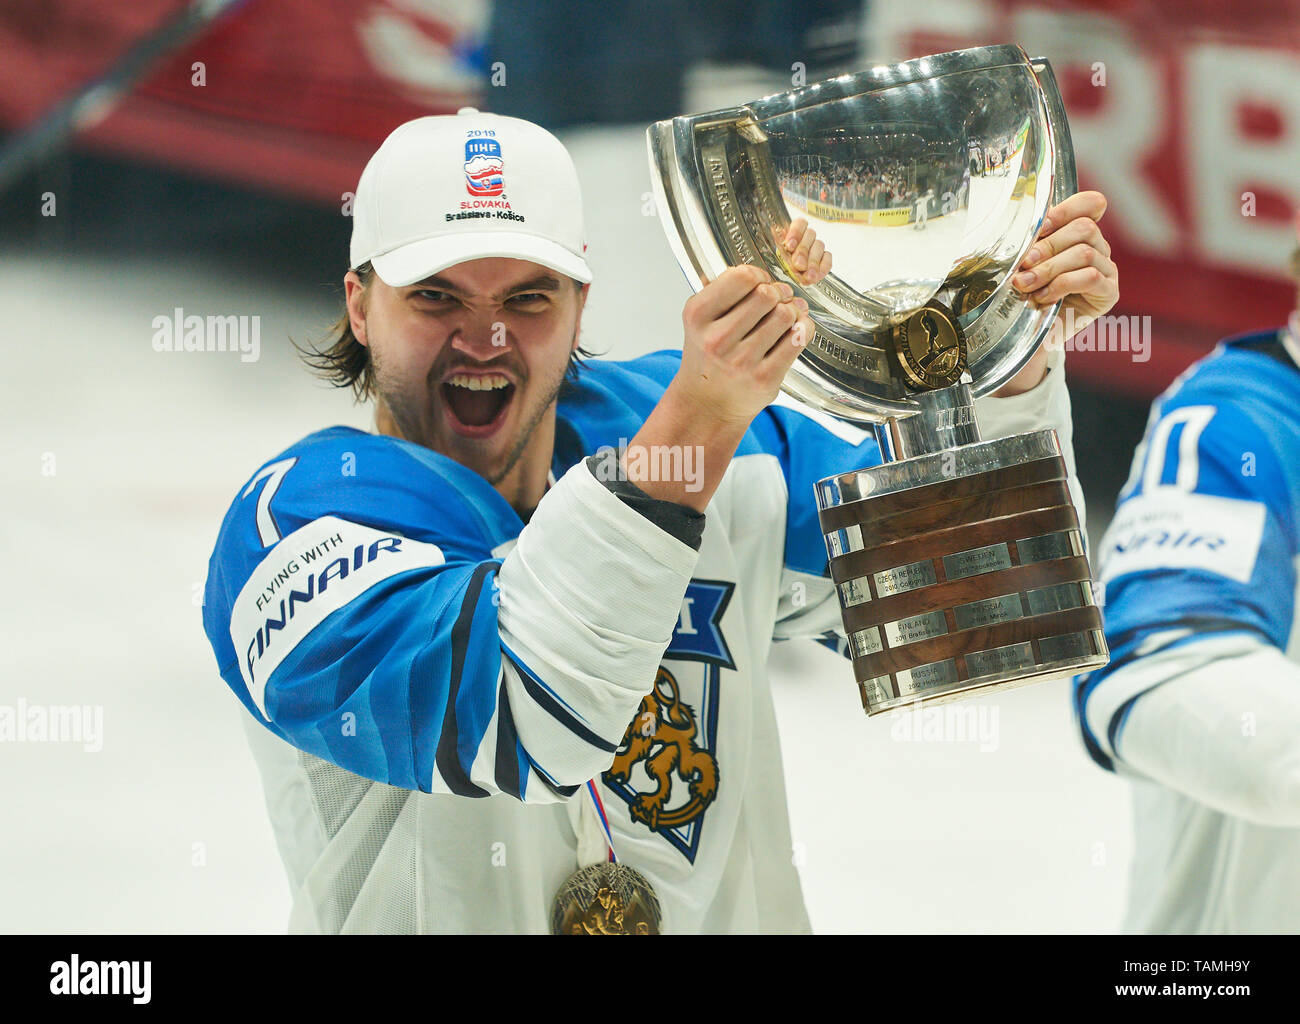 Bratislava, Slovakia. 26th May, 2019. Oliwer KASKI, FIN 7 Finland won the title and celebrate, Cheering, joy, emotions, celebrating, laughing, cheering, rejoice, tearing up the arms, clenching the fist, celebrate, celebration, Torjubel, CANADA - FINLAND 1-3 Kanada - Finnland FINAL IIHF ICE HOCKEY WORLD CHAMPIONSHIPS in Bratislava, Slovakia, Slowakei, May 26, 2019, Season 2018/2019, Credit: Peter Schatz/Alamy Live News - Stock Image